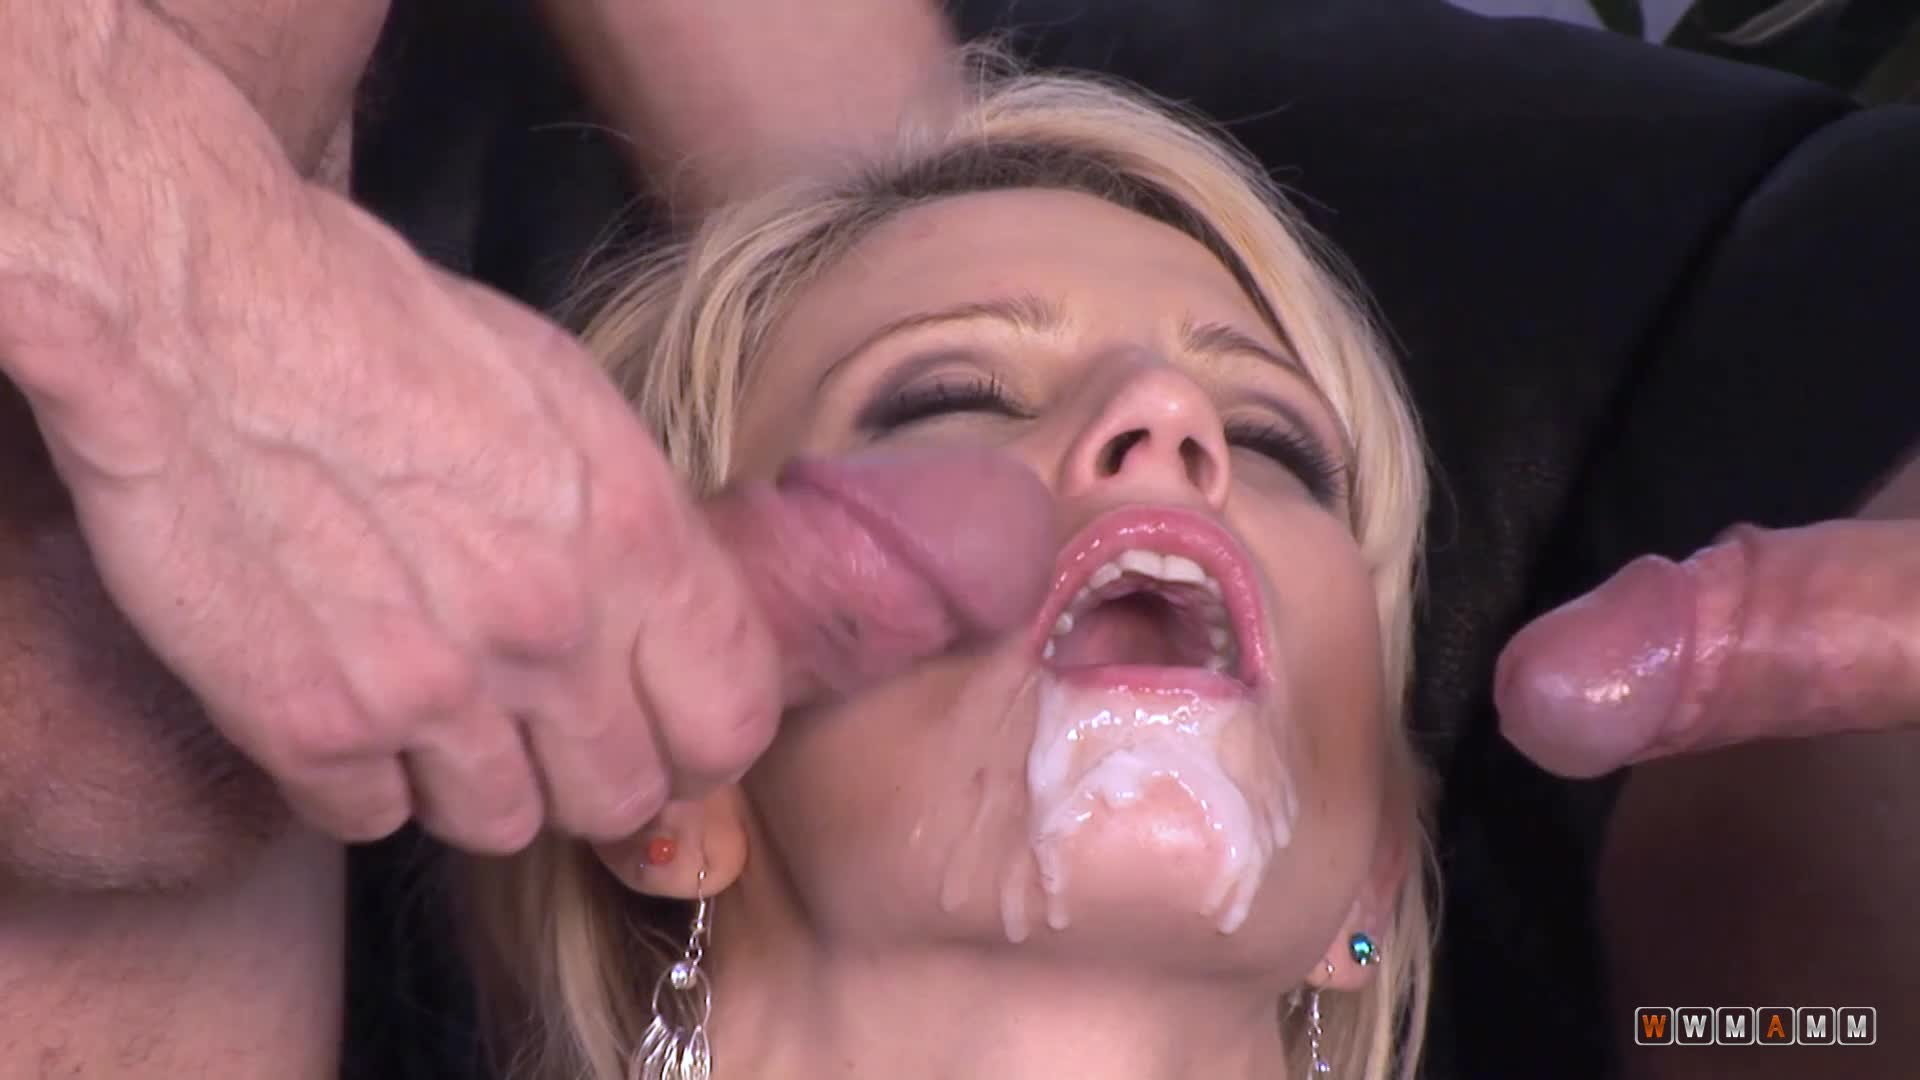 Two Big White Cocks Destroying Sunny's Wet Shaved Pussy